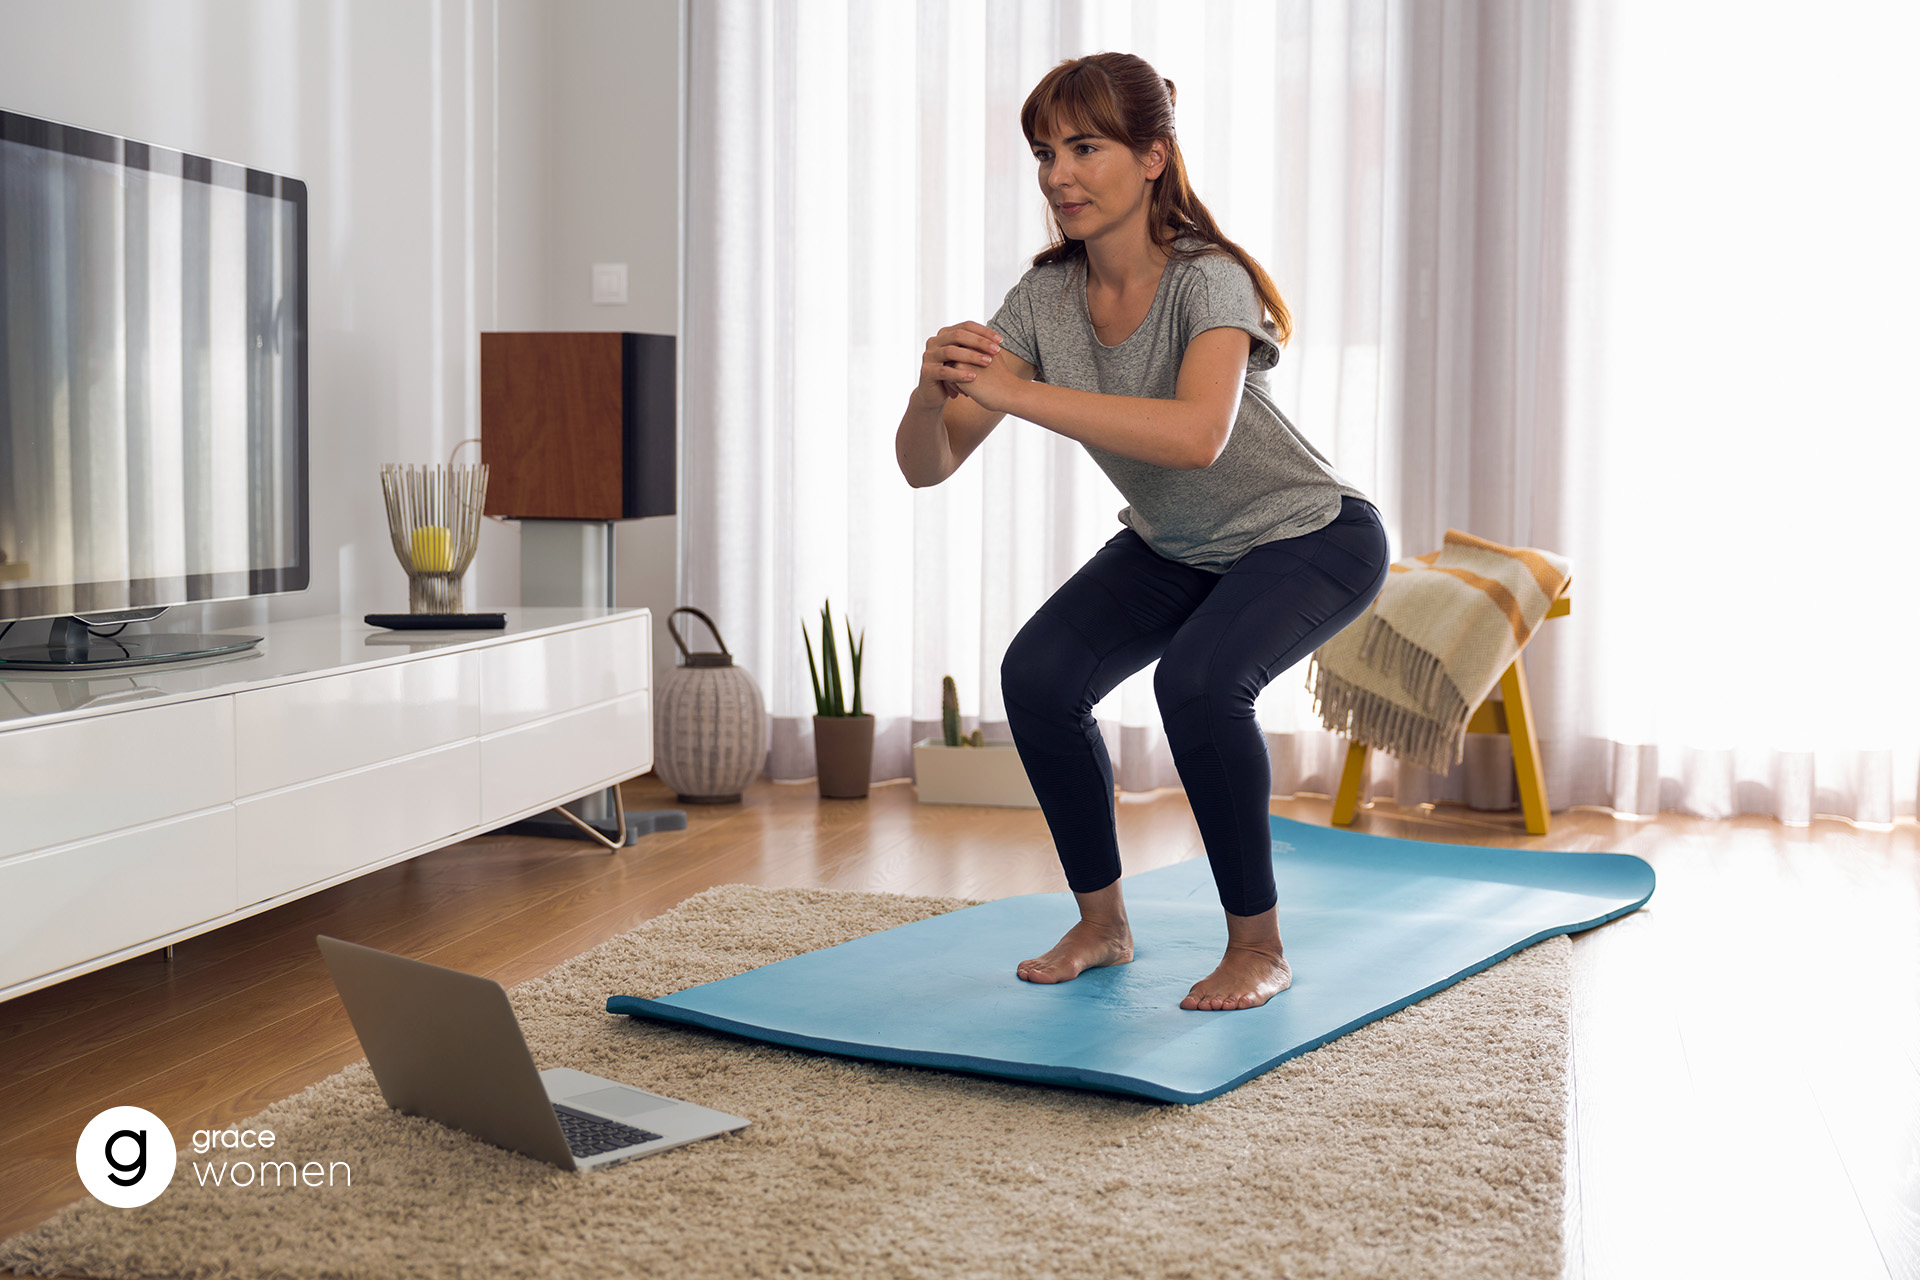 Link to Women's Let's Move Workout detail page